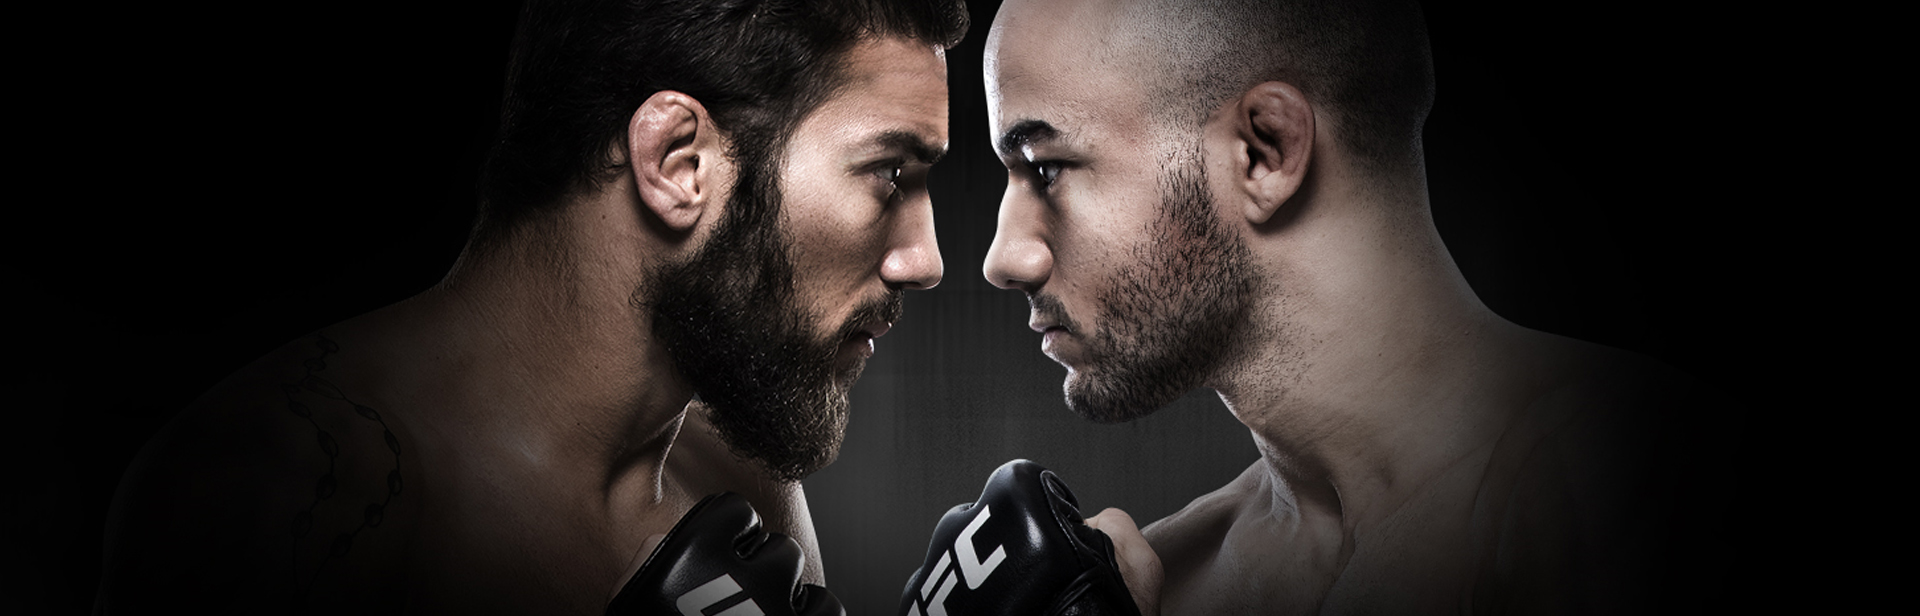 UFC: A summer of must-see fights